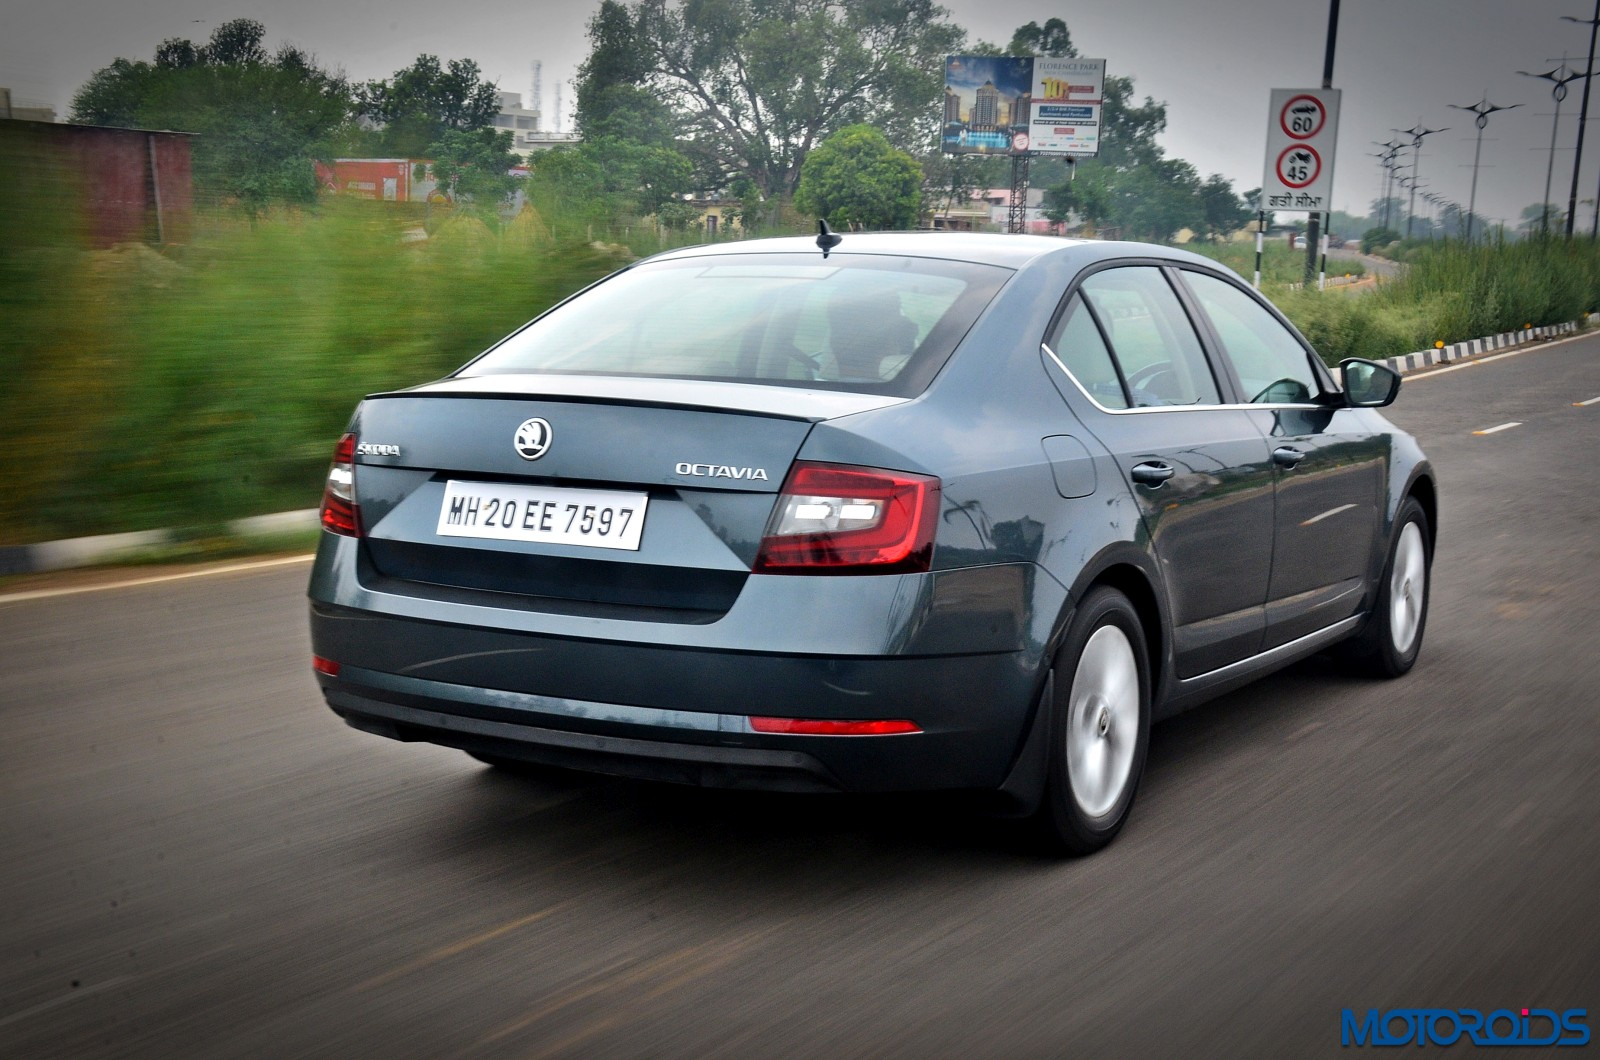 New-2017-Skoda-Octavia-Review-In-motion-pictures-5